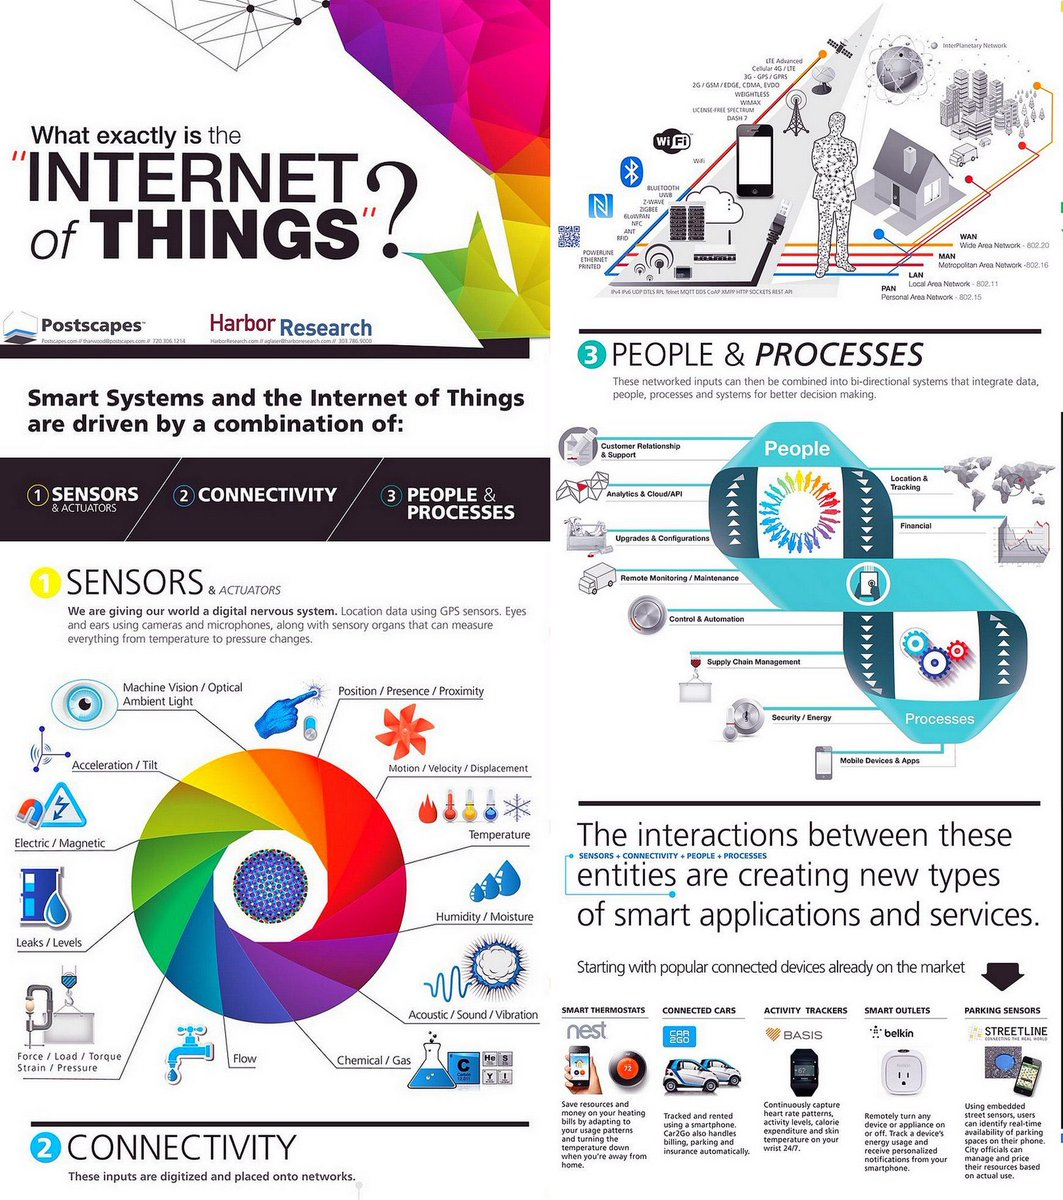 What´s #InternetOfThings? #IoT #Mpgvip #defstar5 #makeyourownlane #DigitalMarketing #Marketing #SEO <br>http://pic.twitter.com/AQcnADXKFn by @ziaullah699